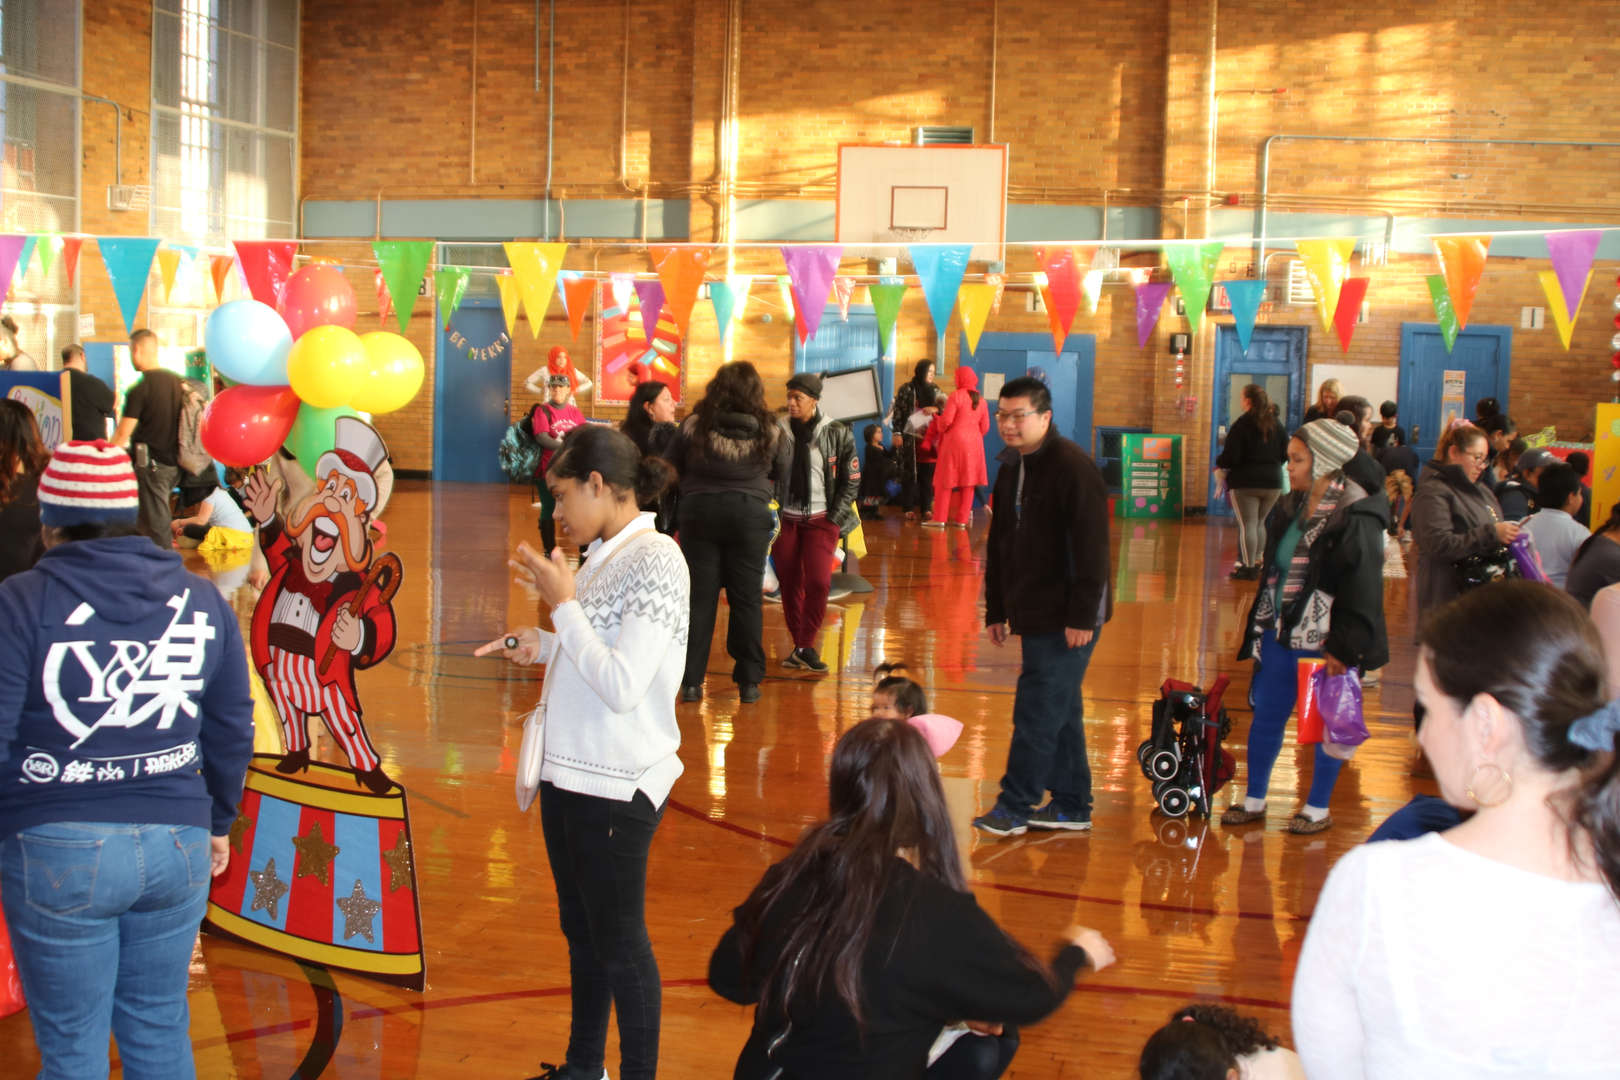 Families at school event